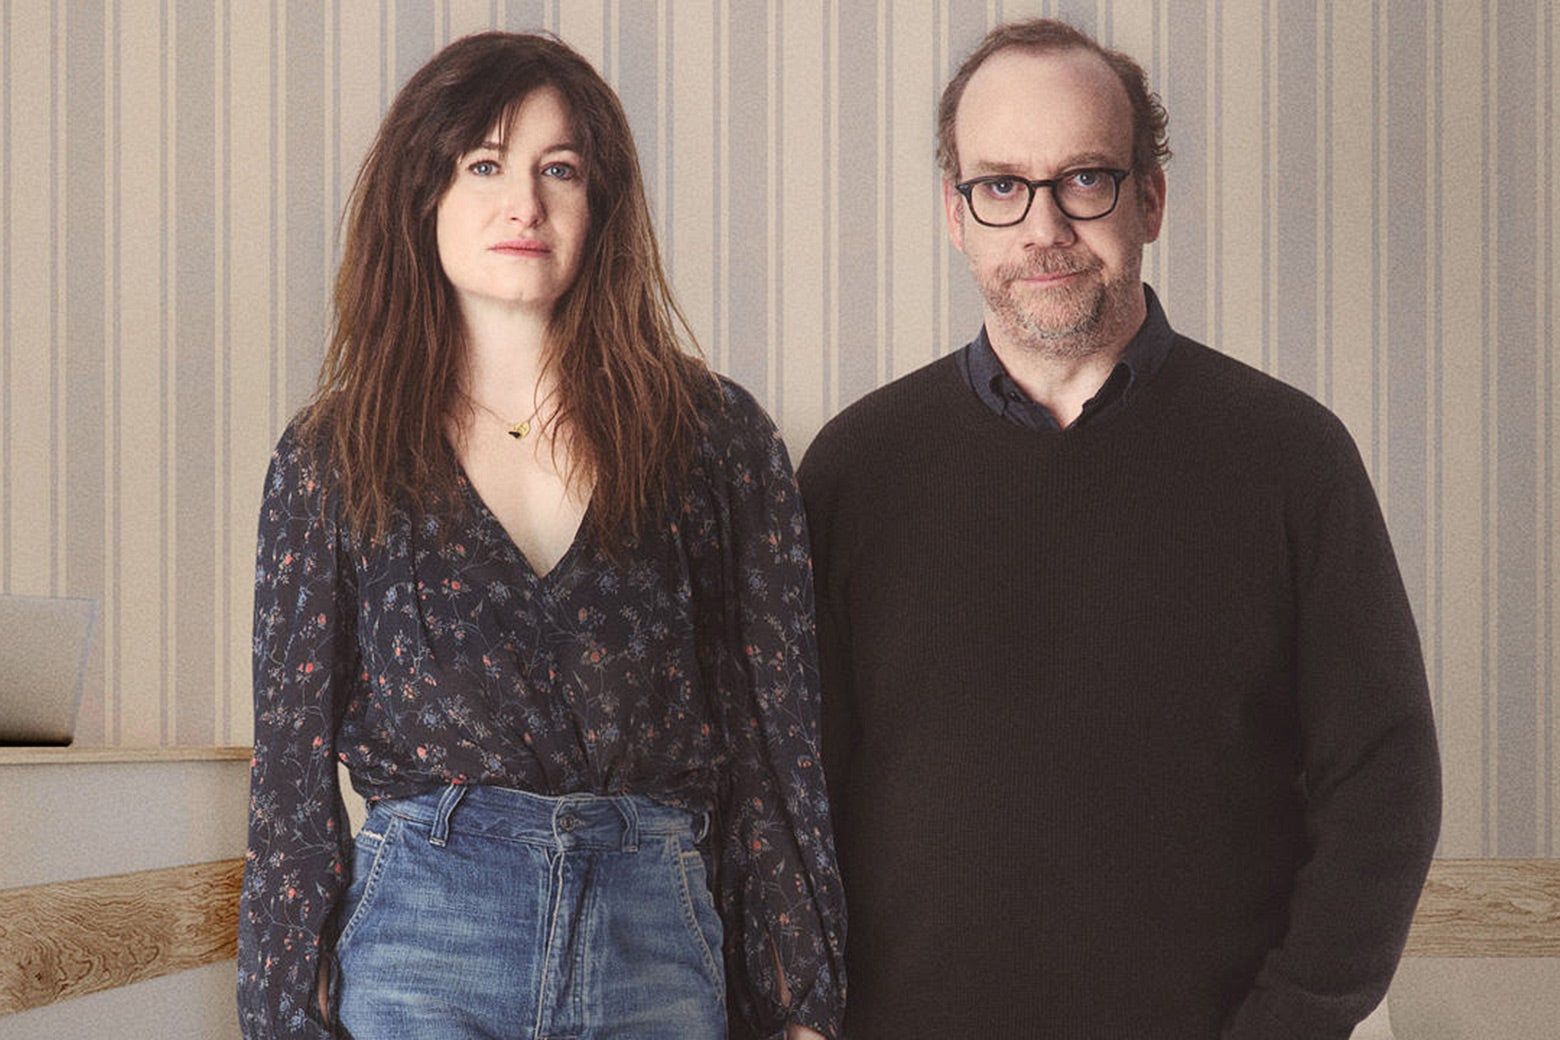 Kathryn Hahn and Paul Giamatti stand with neutral expressions in this Private Life photo.